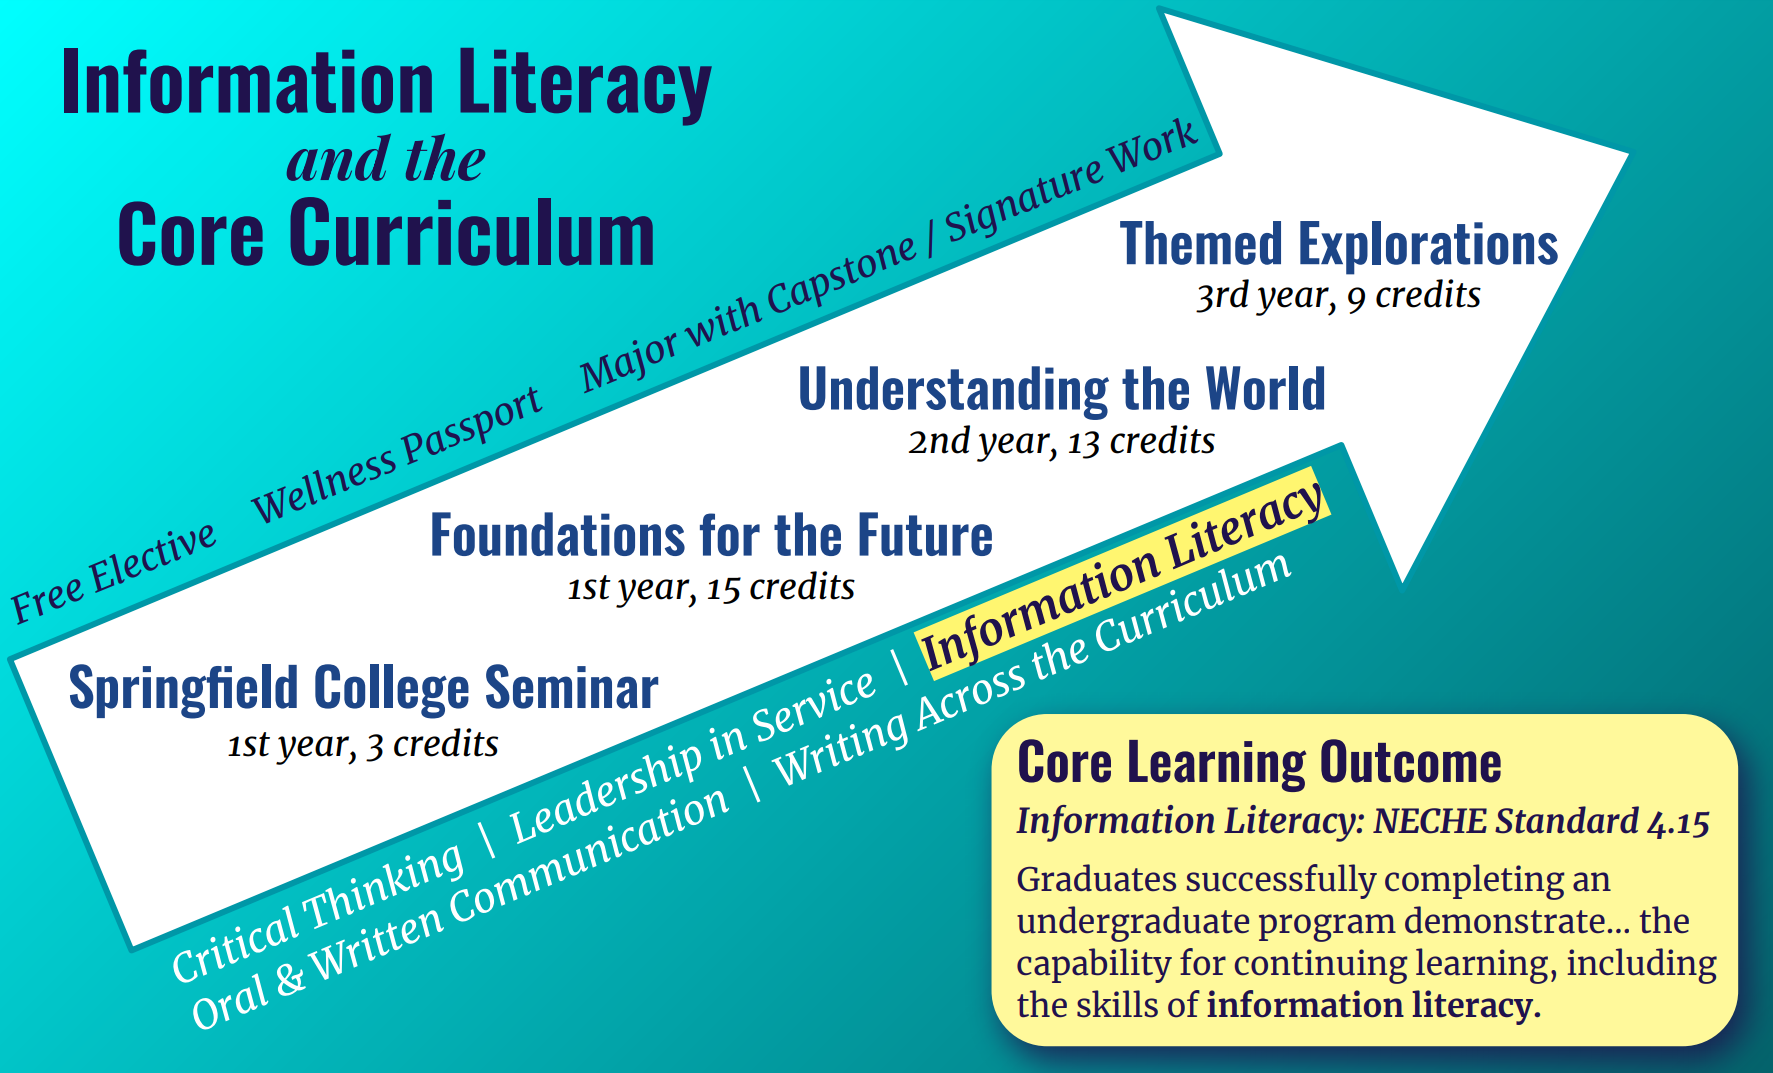 Information Literacy and the Core Curriculum: Image of the Core Curriculum arrow with Information Literacy highlighted.